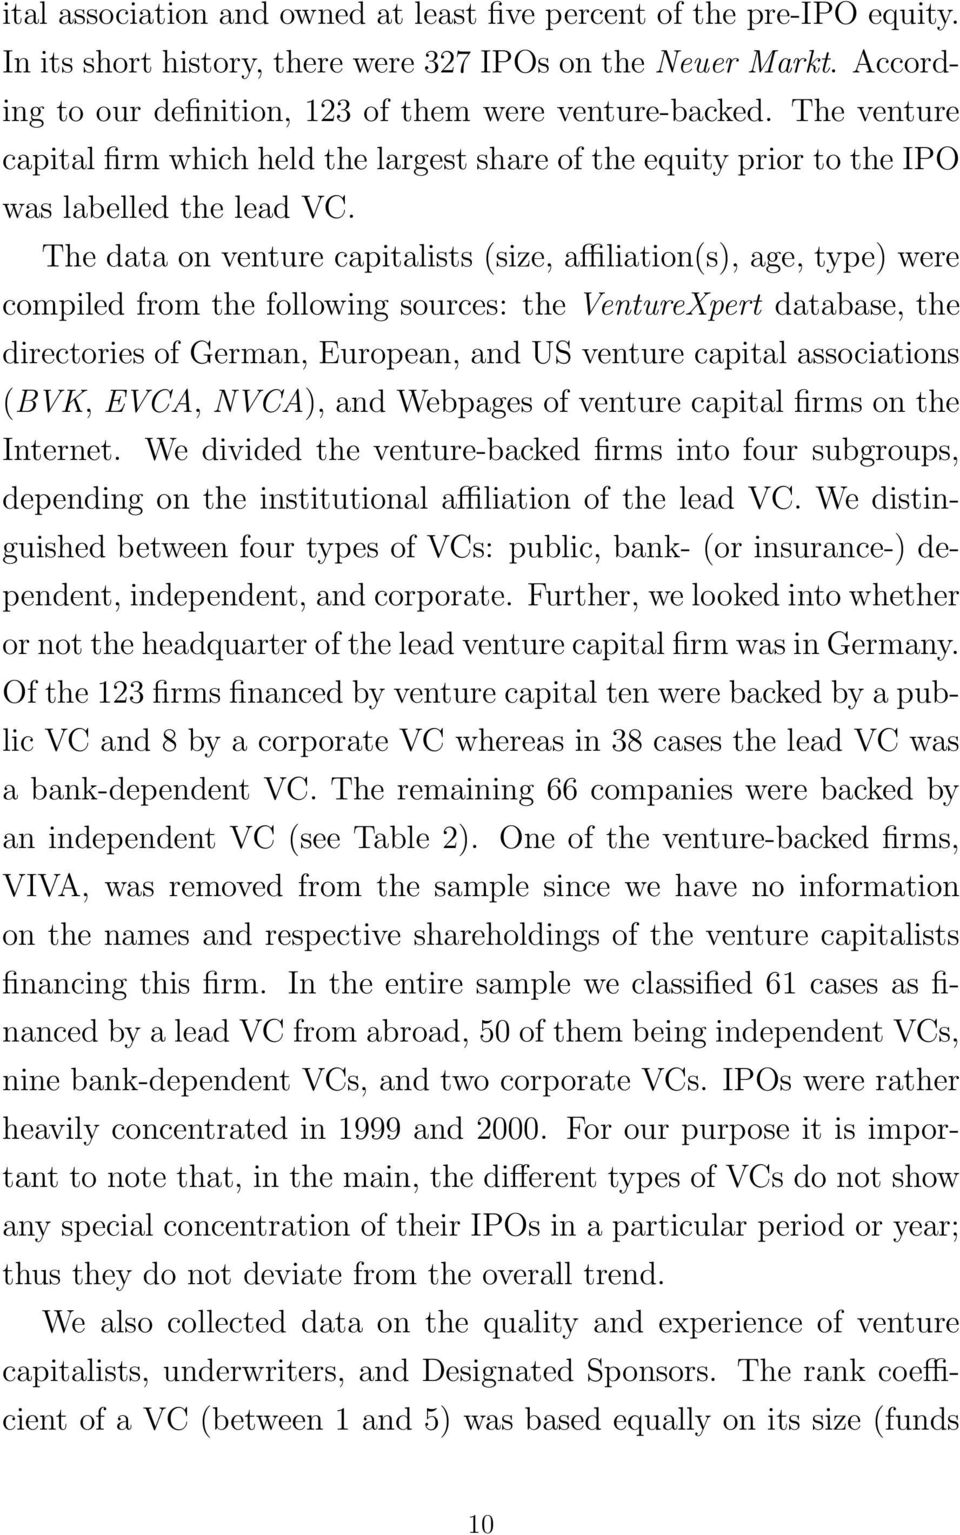 The data on venture capitalists (size, affiliation(s), age, type) were compiled from the following sources: the VentureXpert database, the directories of German, European, and US venture capital